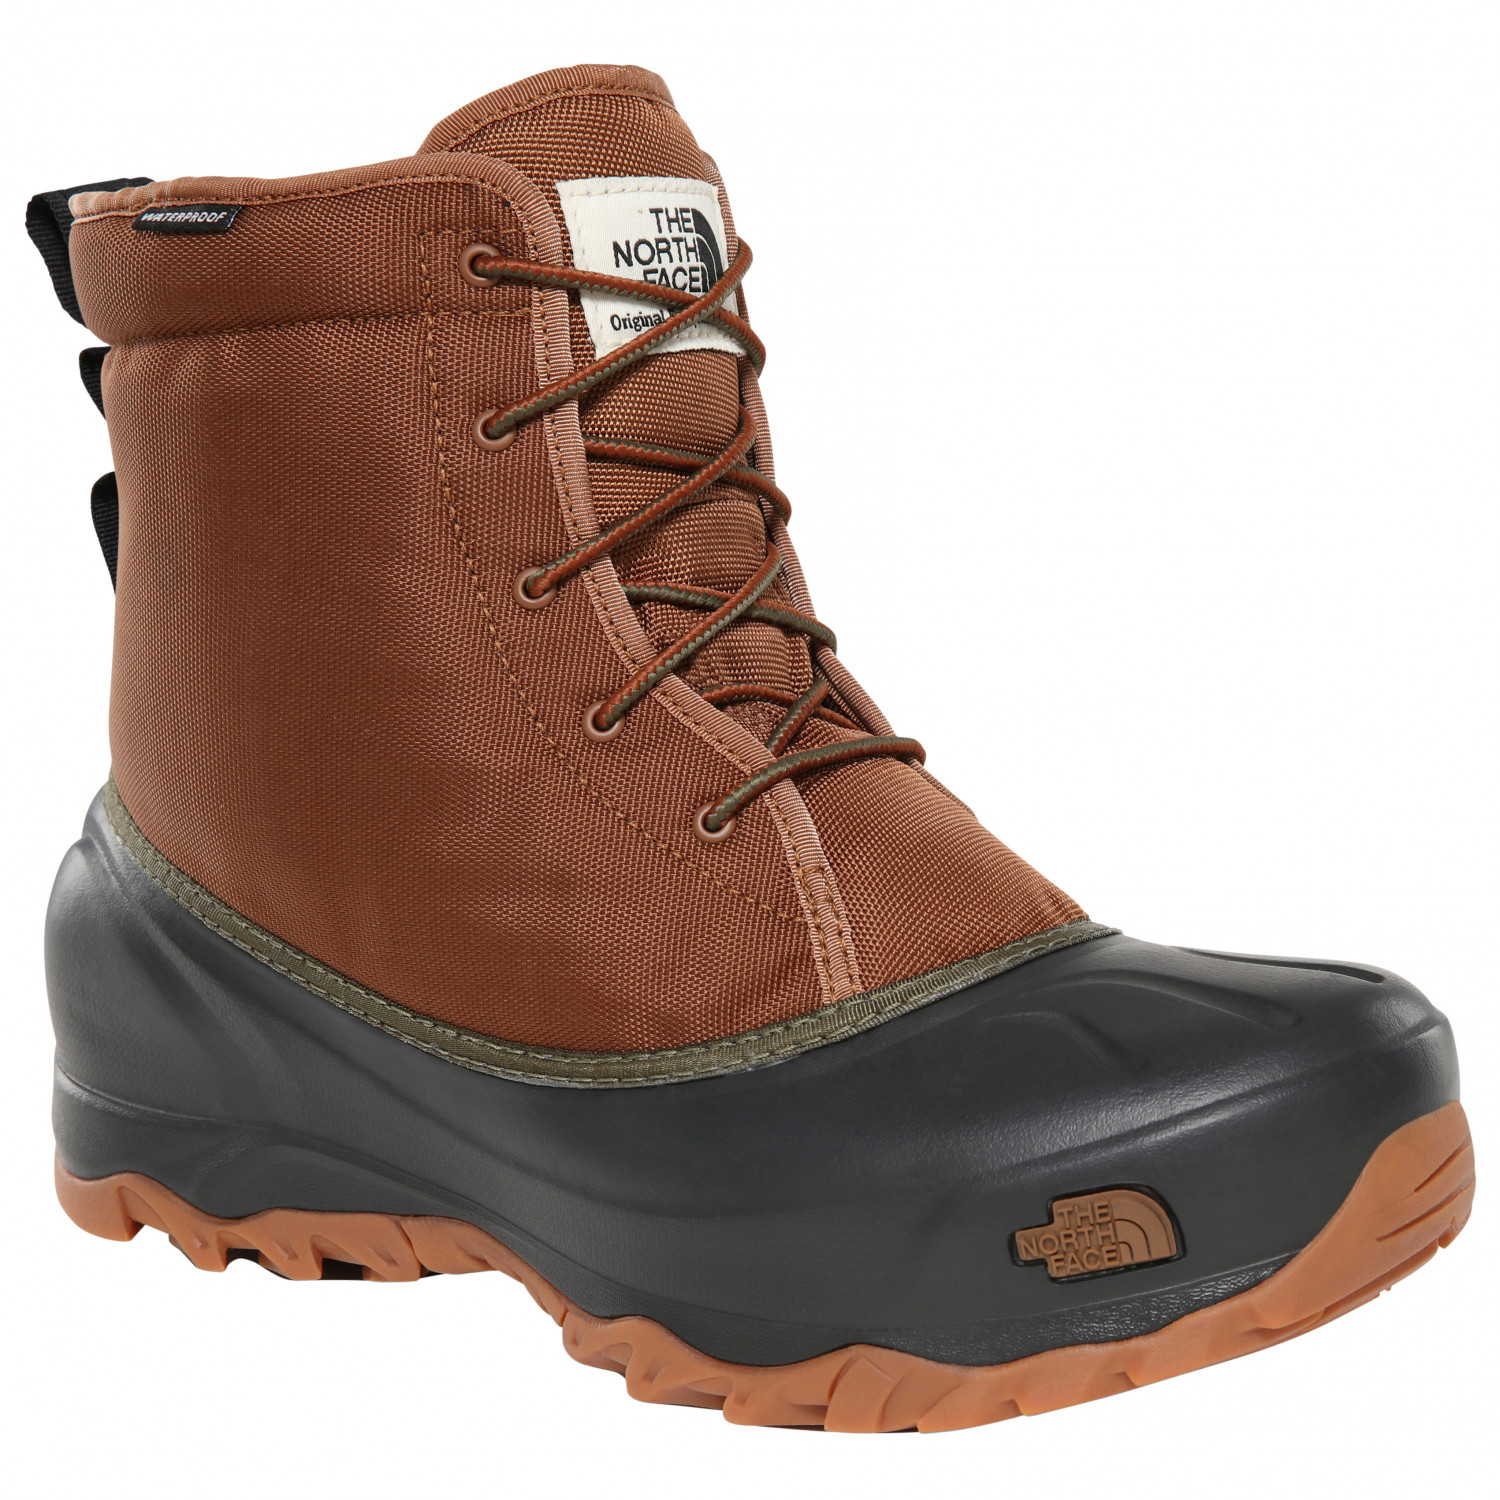 cheap for discount 403f6 6502d The North Face - Tsumoru Boot - Winterschuhe - Monks Robe Brown / TNF Black    8,5 (US)